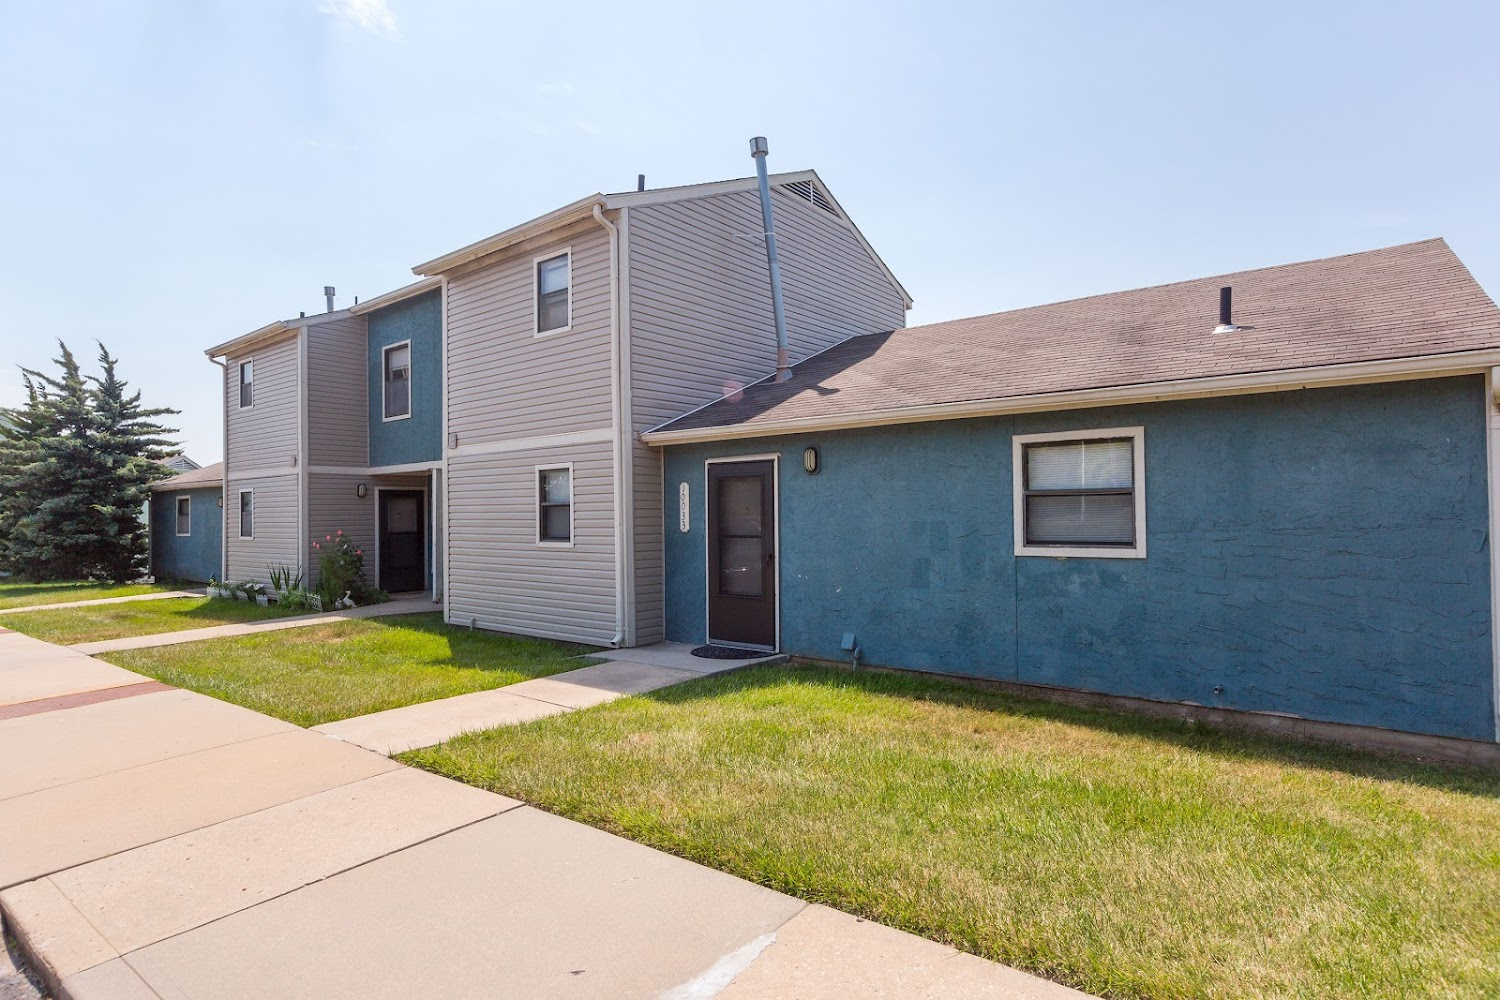 Three Bedroom Floorplan 3 Bed 1 5 Bath Overbrook Hills Apartments In Merriam Kansas The